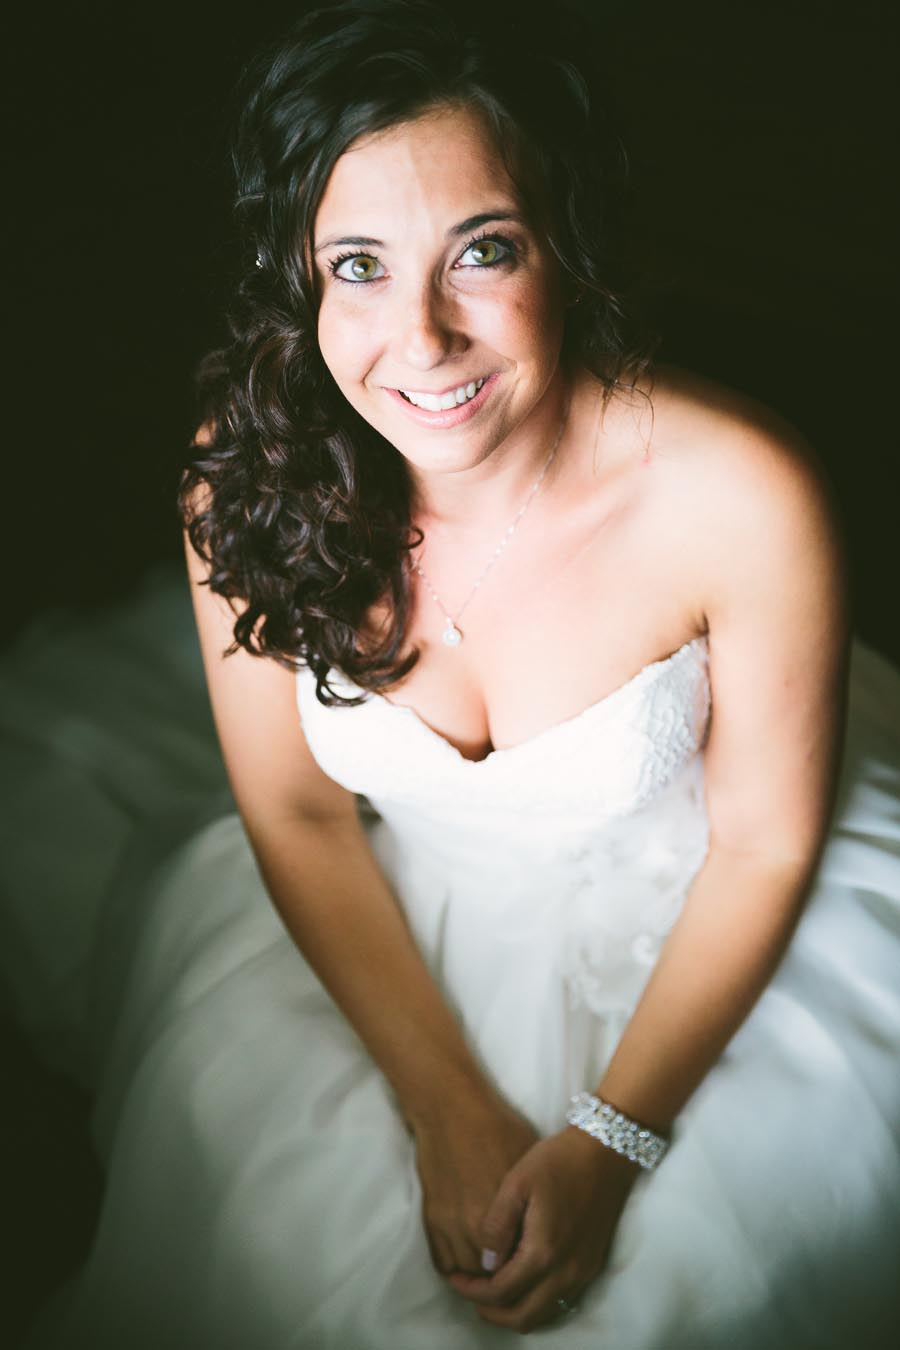 north-olmsted-ohio-wedding-photography-st-clarence-11.jpg